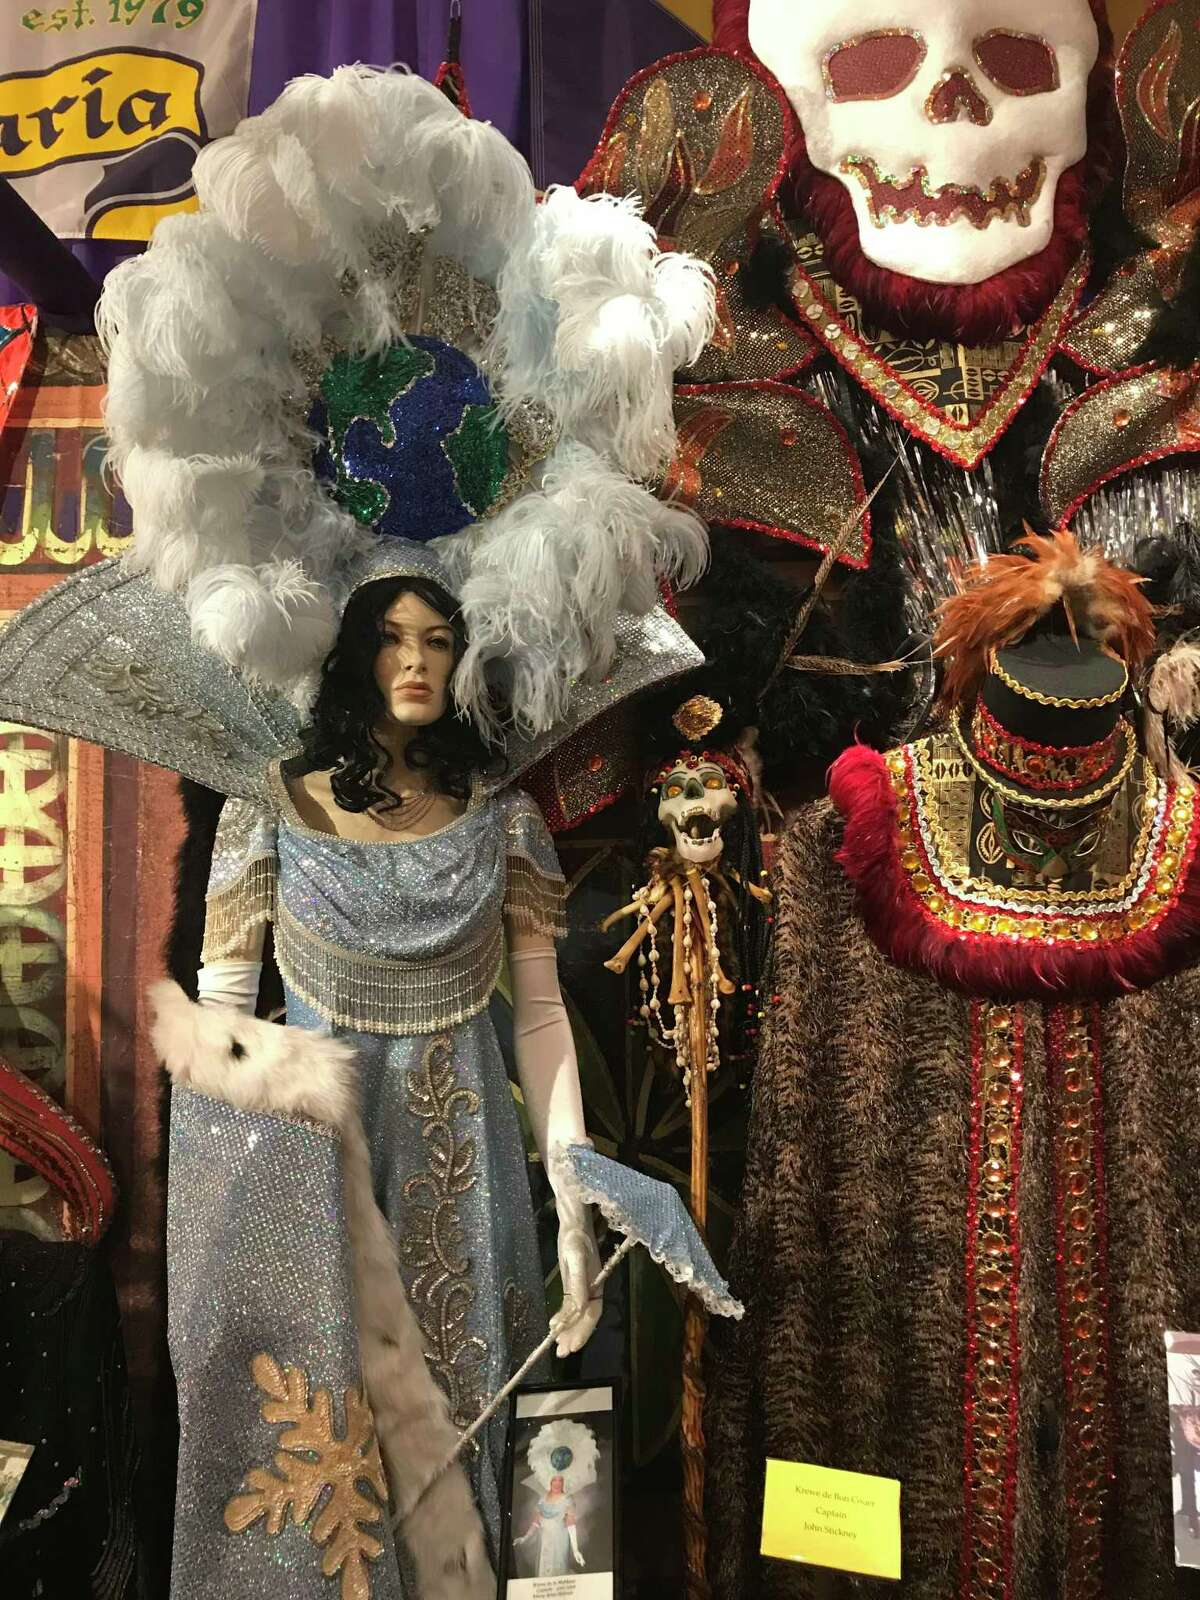 The Mardi Gras Museum of Imperial Calcasieu in Lake Charles, Louisiana, displays nearly 300 costumes and depicts the history of Mardi Gras in the area.